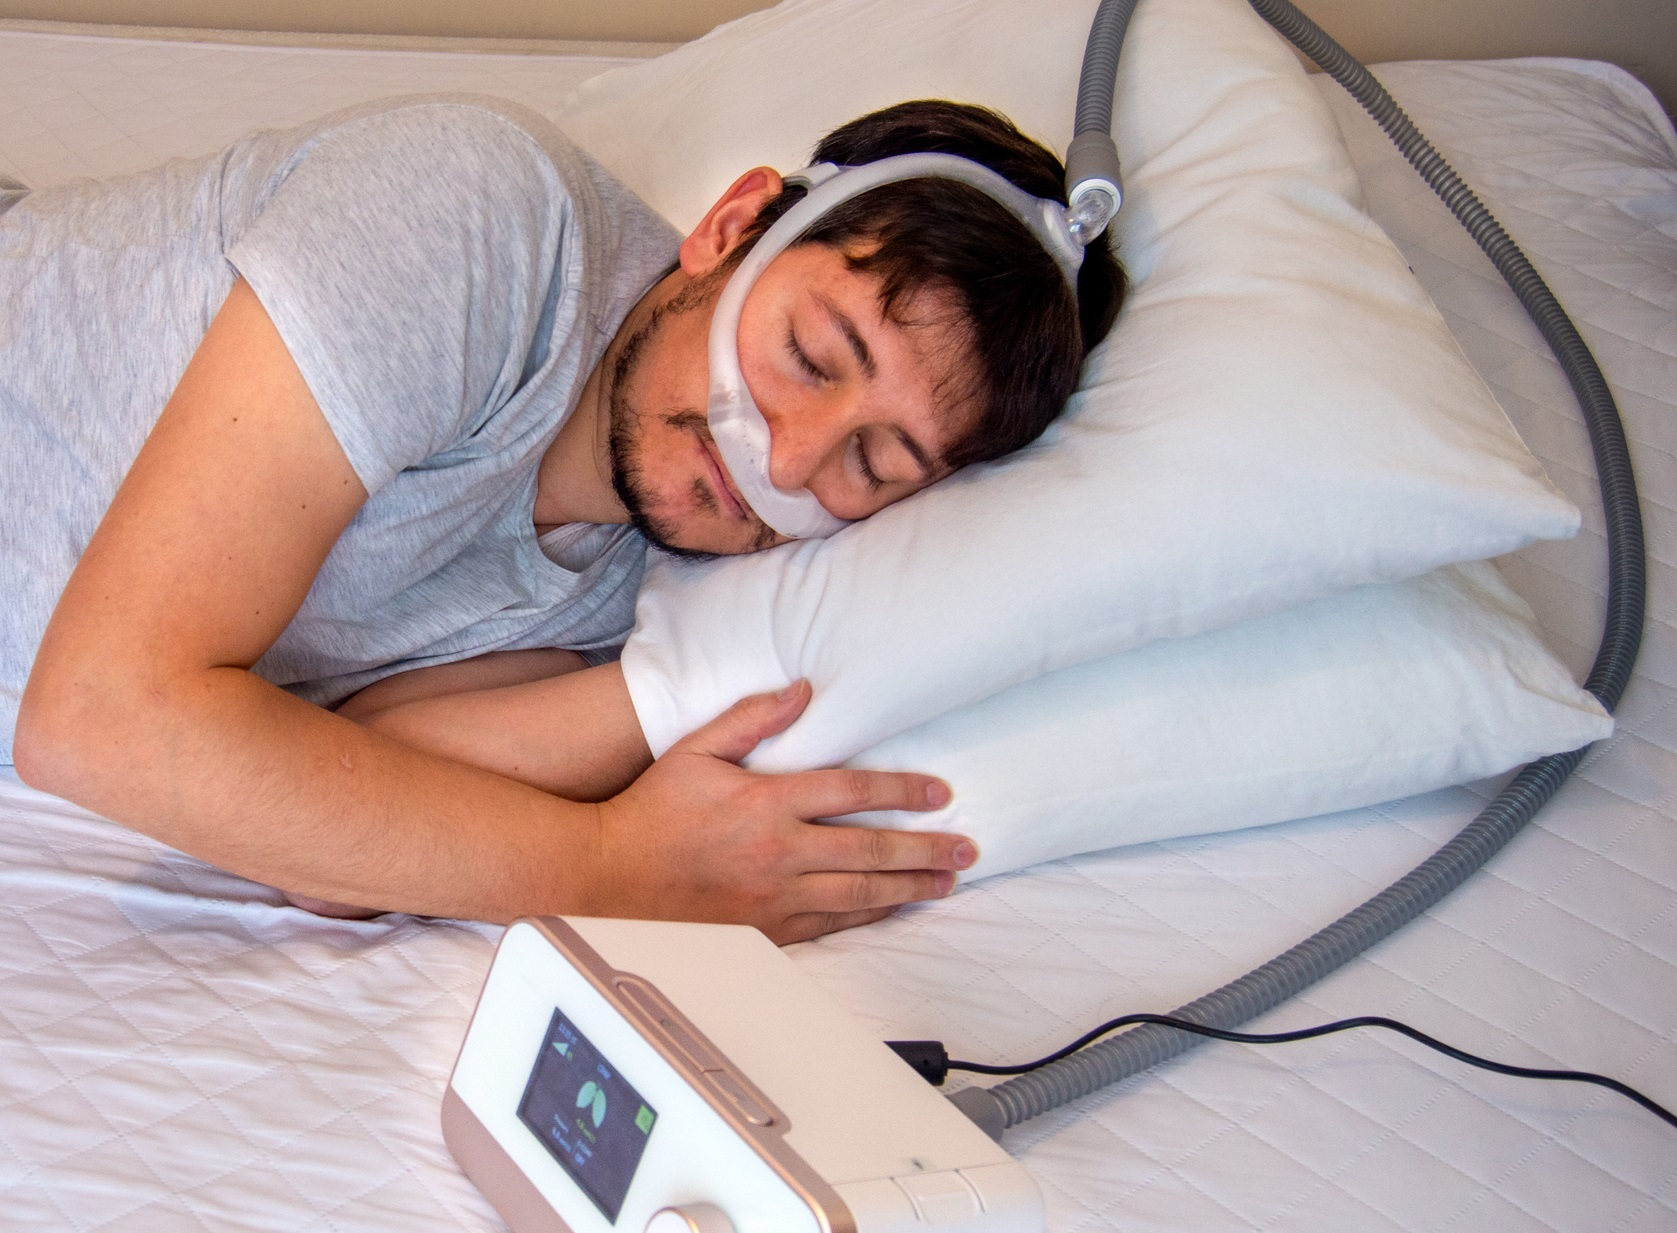 sleep doctor offers tips for safe cpap use amid covid pandemic einstein perspectives